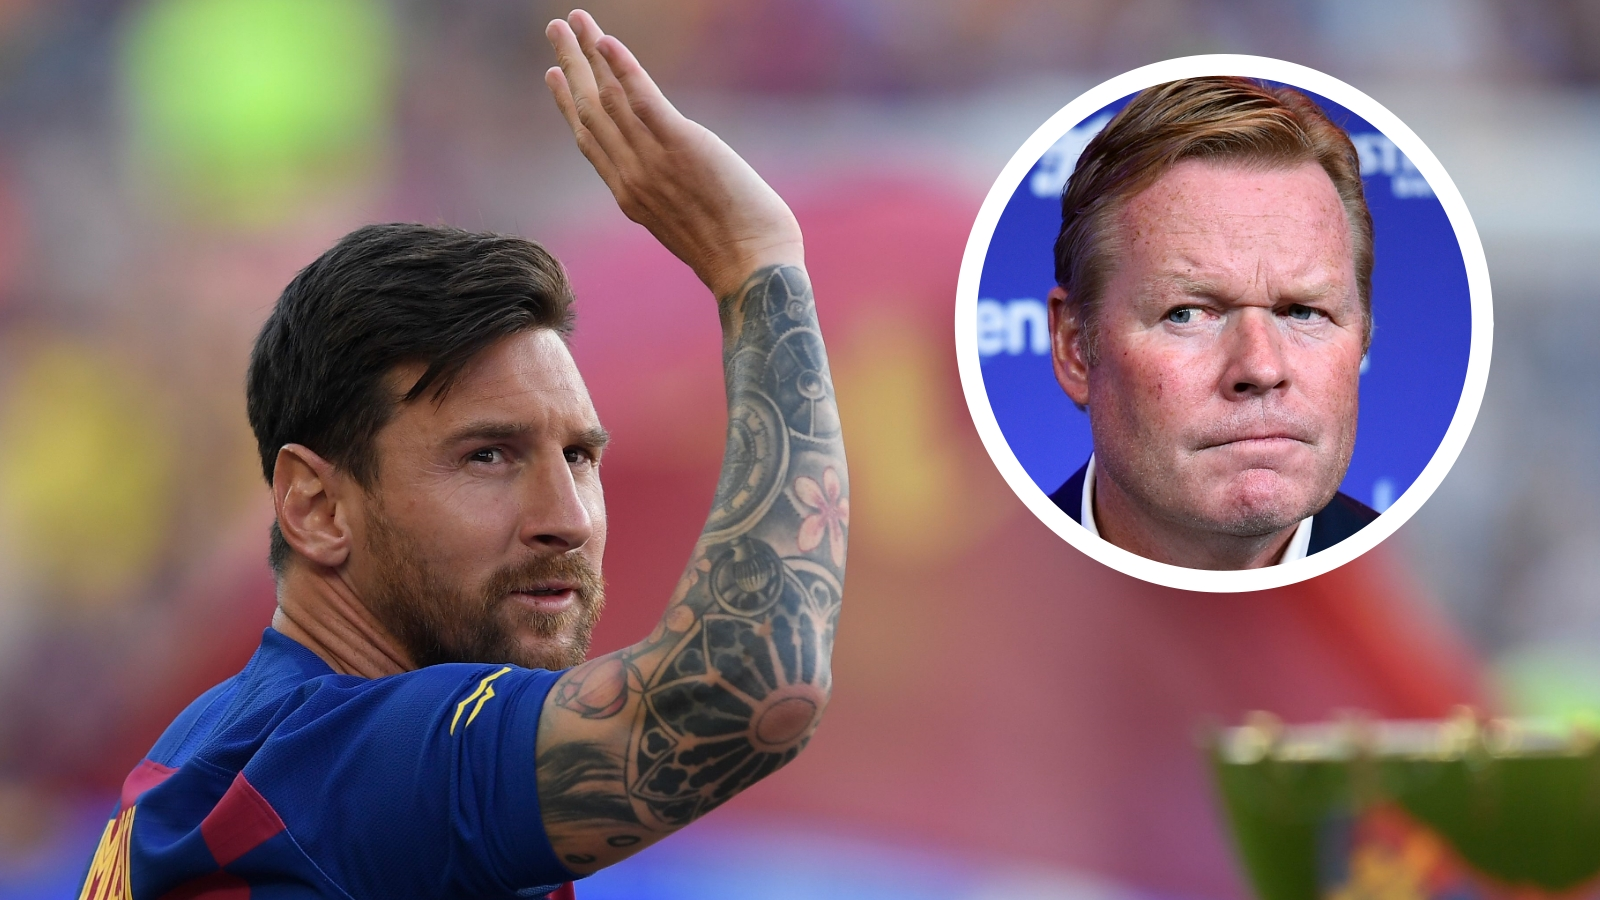 Koeman hoping Messi spends 'many more years' at Barcelona but leaves future call with Argentine